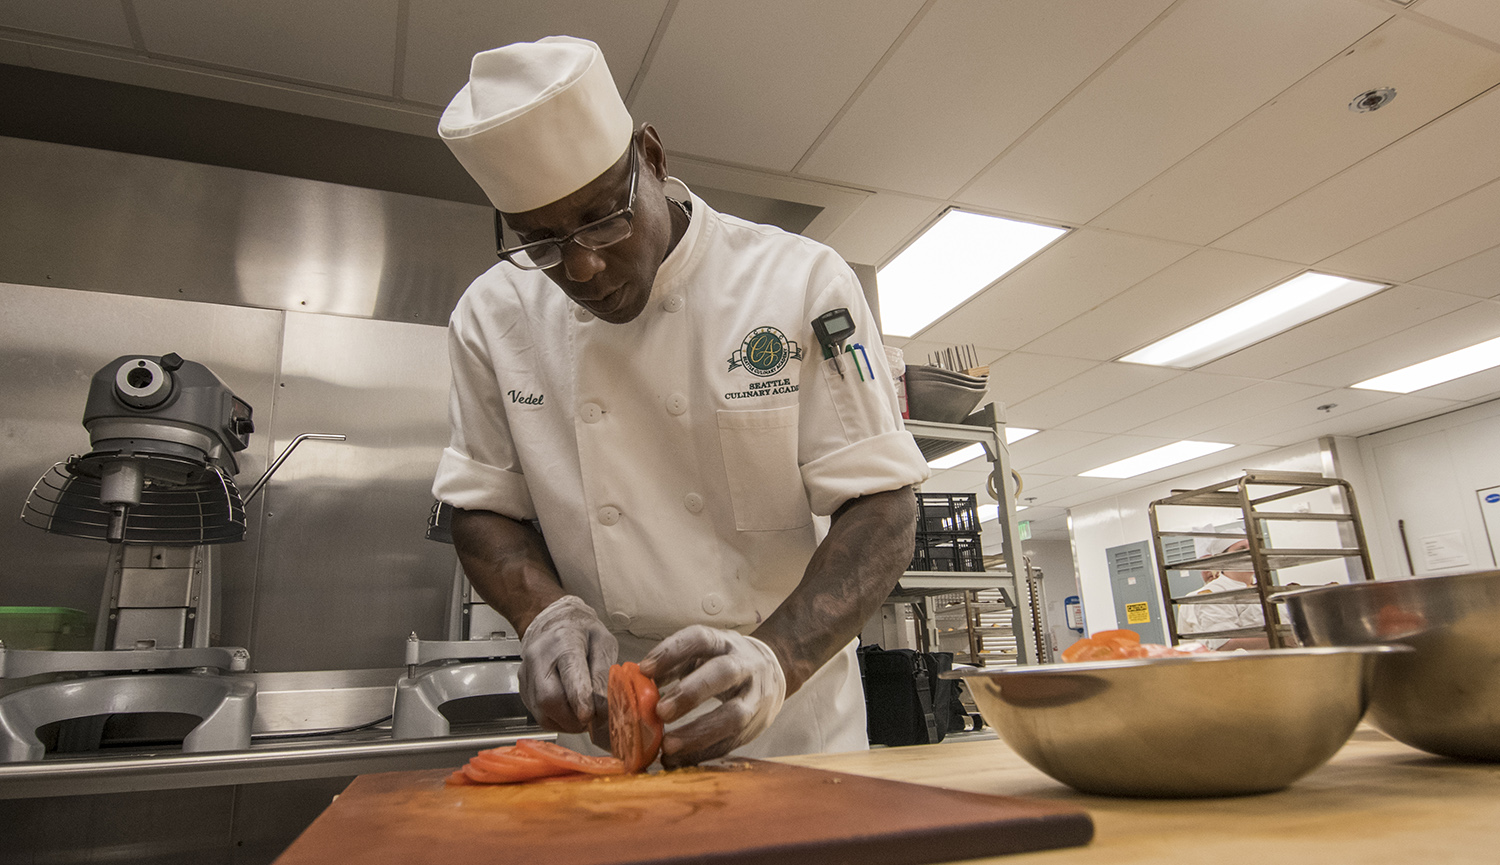 Culinary Arts student working on small plates